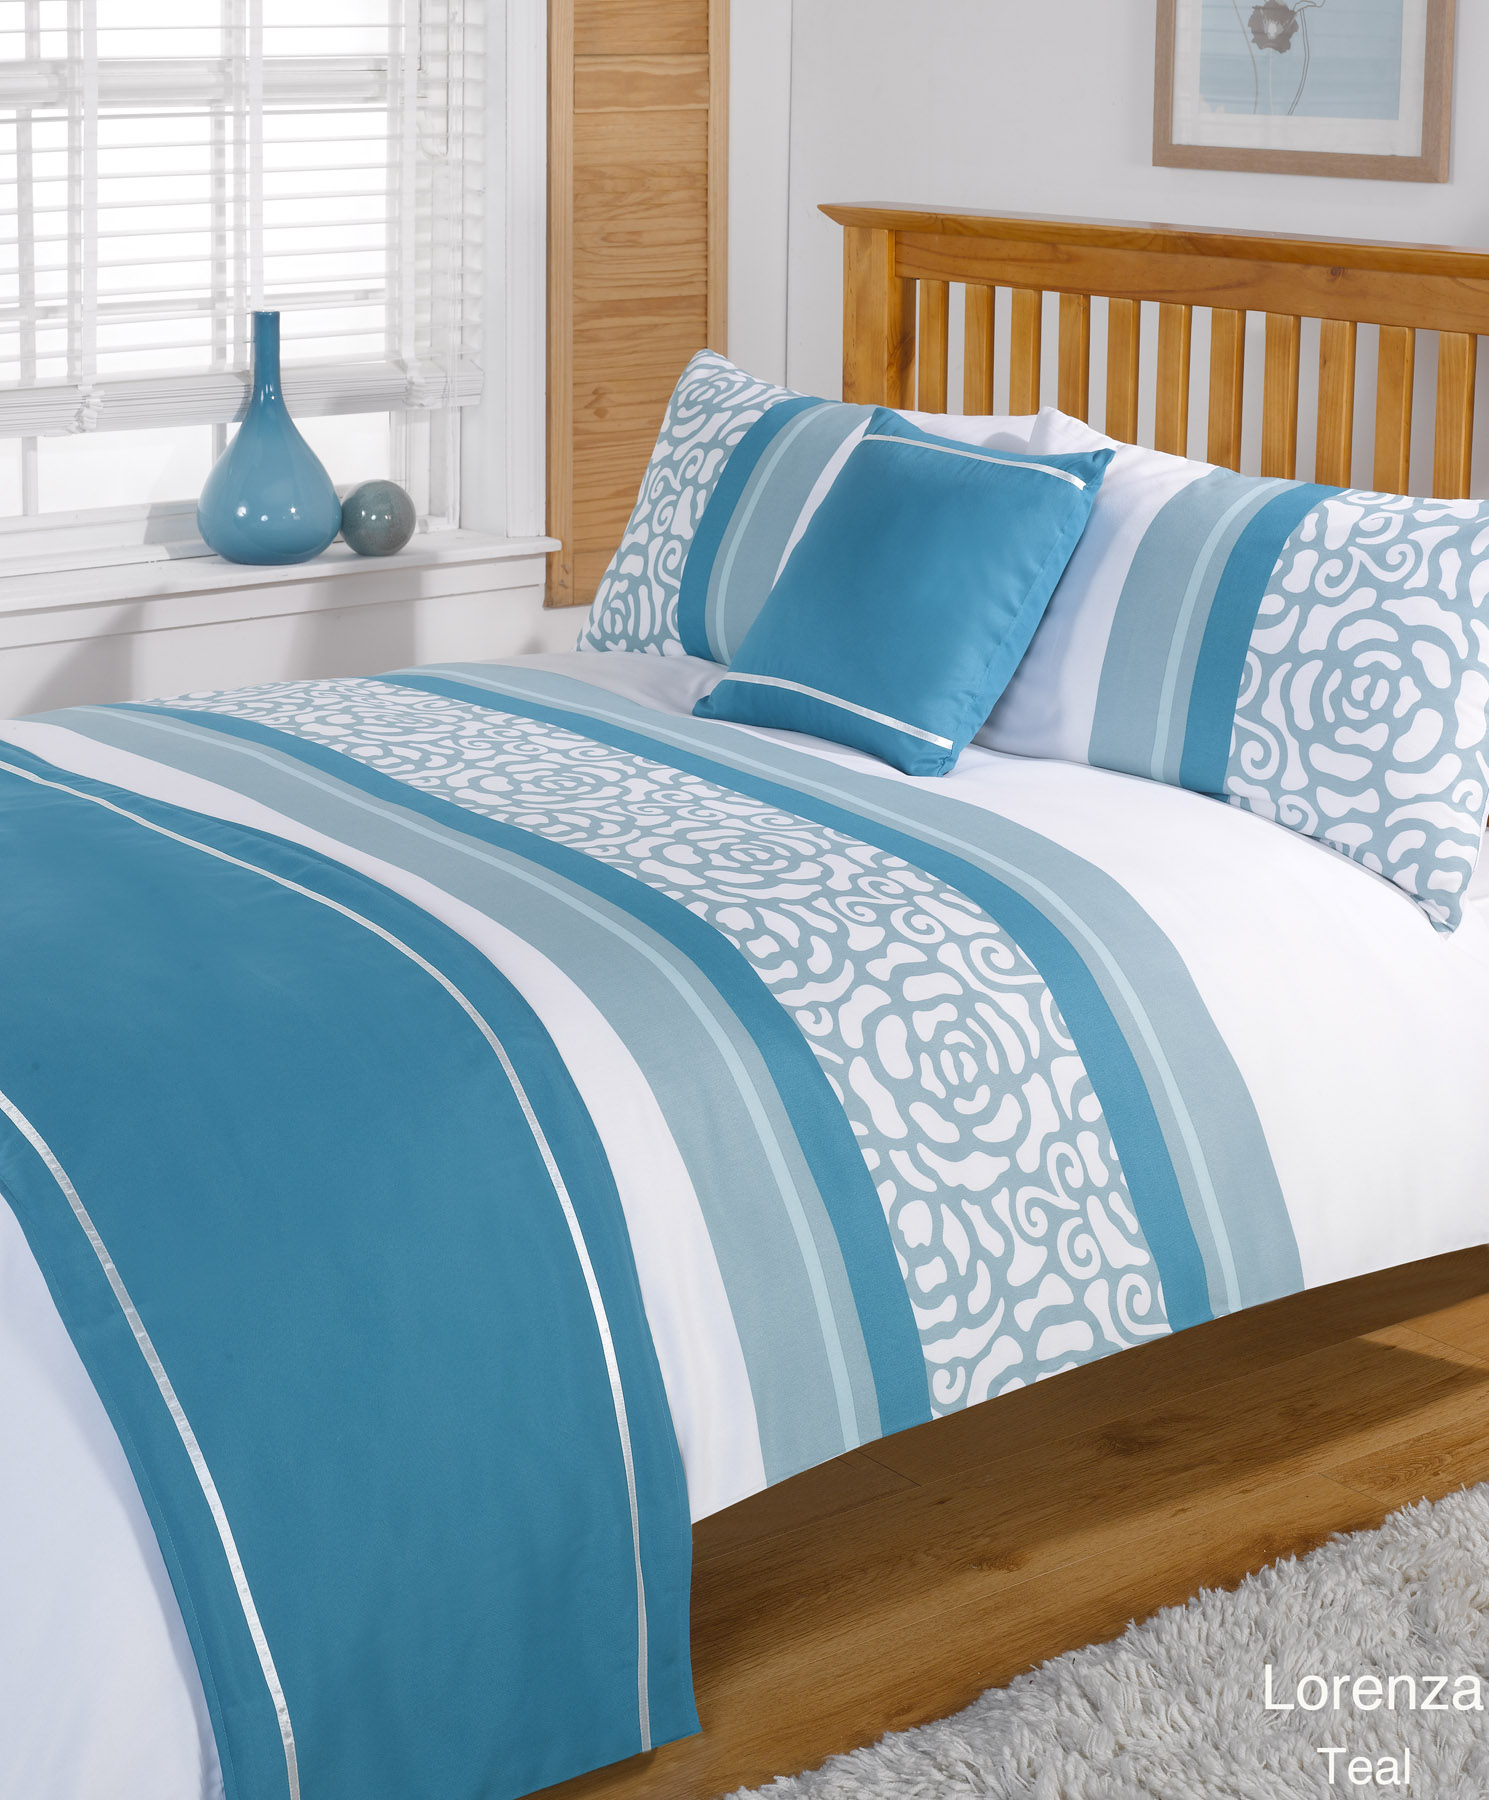 The Hillsdale Claudia Bed Set combines classic and contemporary elements for a beautiful, transitional look. The clean lines of its double arch silhouette are complemented by delicately curved finials all in a lovely, matte nickel finish.